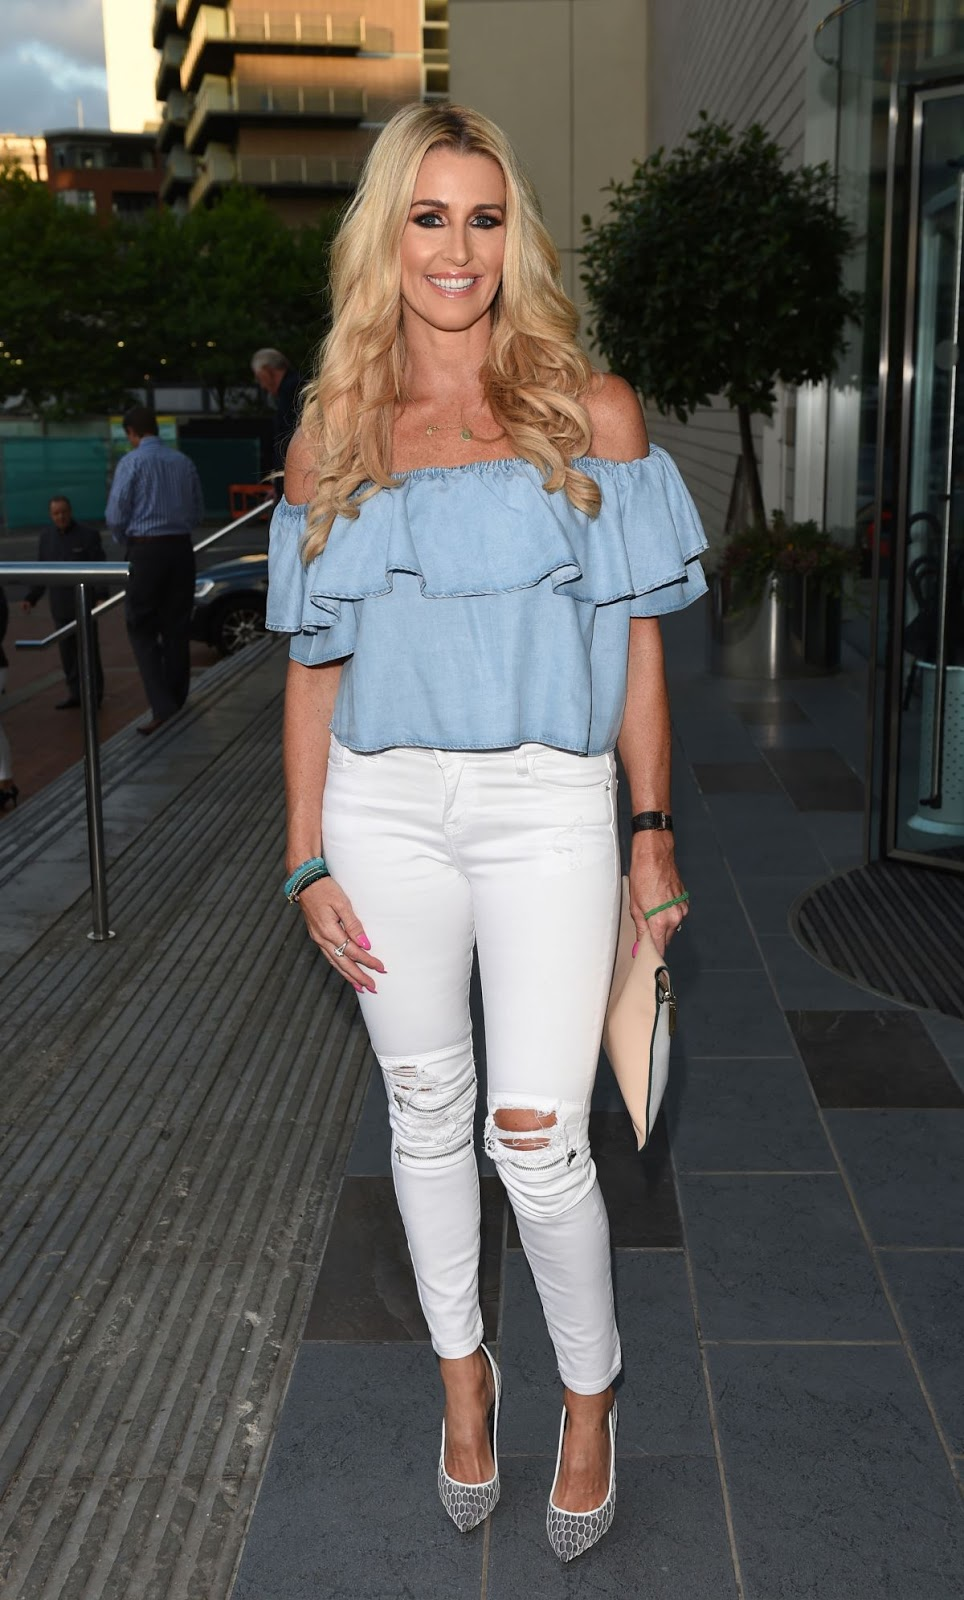 HQ Wallpapers of Leanne Brown at Lowry Hotel in Manchester